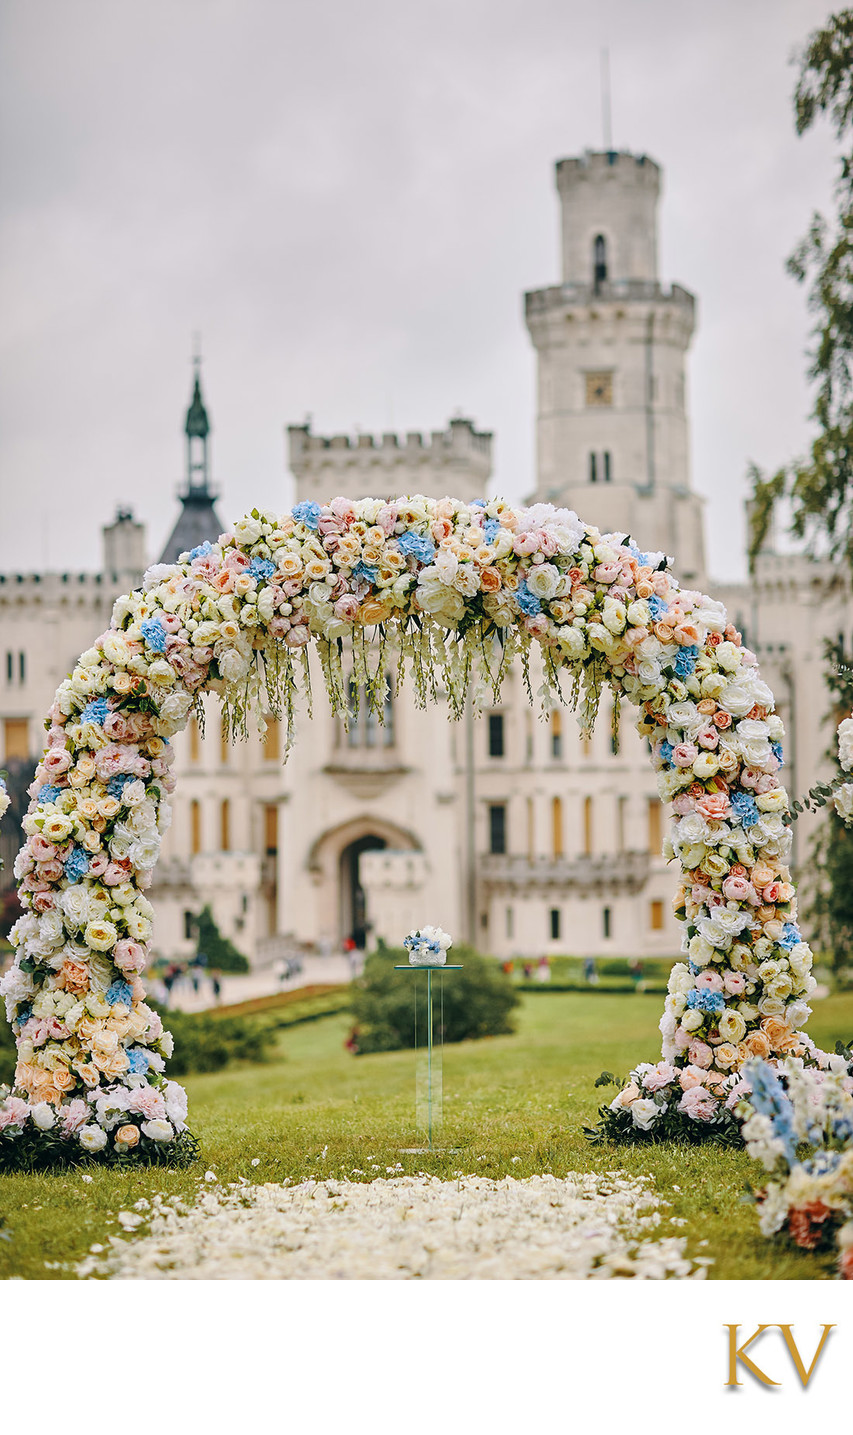 Castle Hluboka luxury outdoor wedding day photo